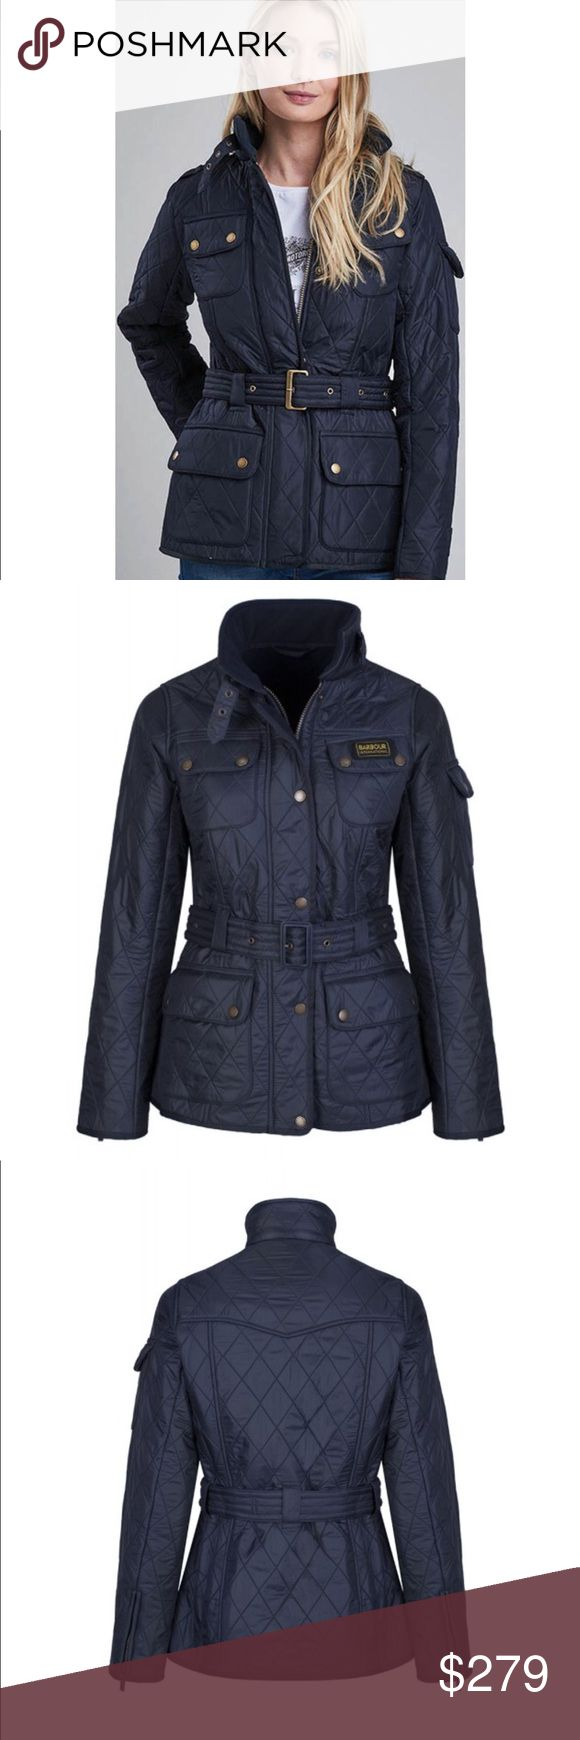 NWT BARBOUR TOURER POLARQUILT: NAVY This jacket is GORGEOUS. I️t is brand new and I️ bought I️t as a treat to myself but I️ never wear I️t and I️t deserves to be worn!! 😭😭 A Barbour jacket is a staple in any wardrobe! The last pick shows I️t is on sale now at Nordstrom but that is black, the rest of the pics and this jacket are NAVY! 😍😍😍 size: US 8/UK 12 this jacket is so flattering! The belt makes your waist look so tiny! Barbour Jackets & Coats